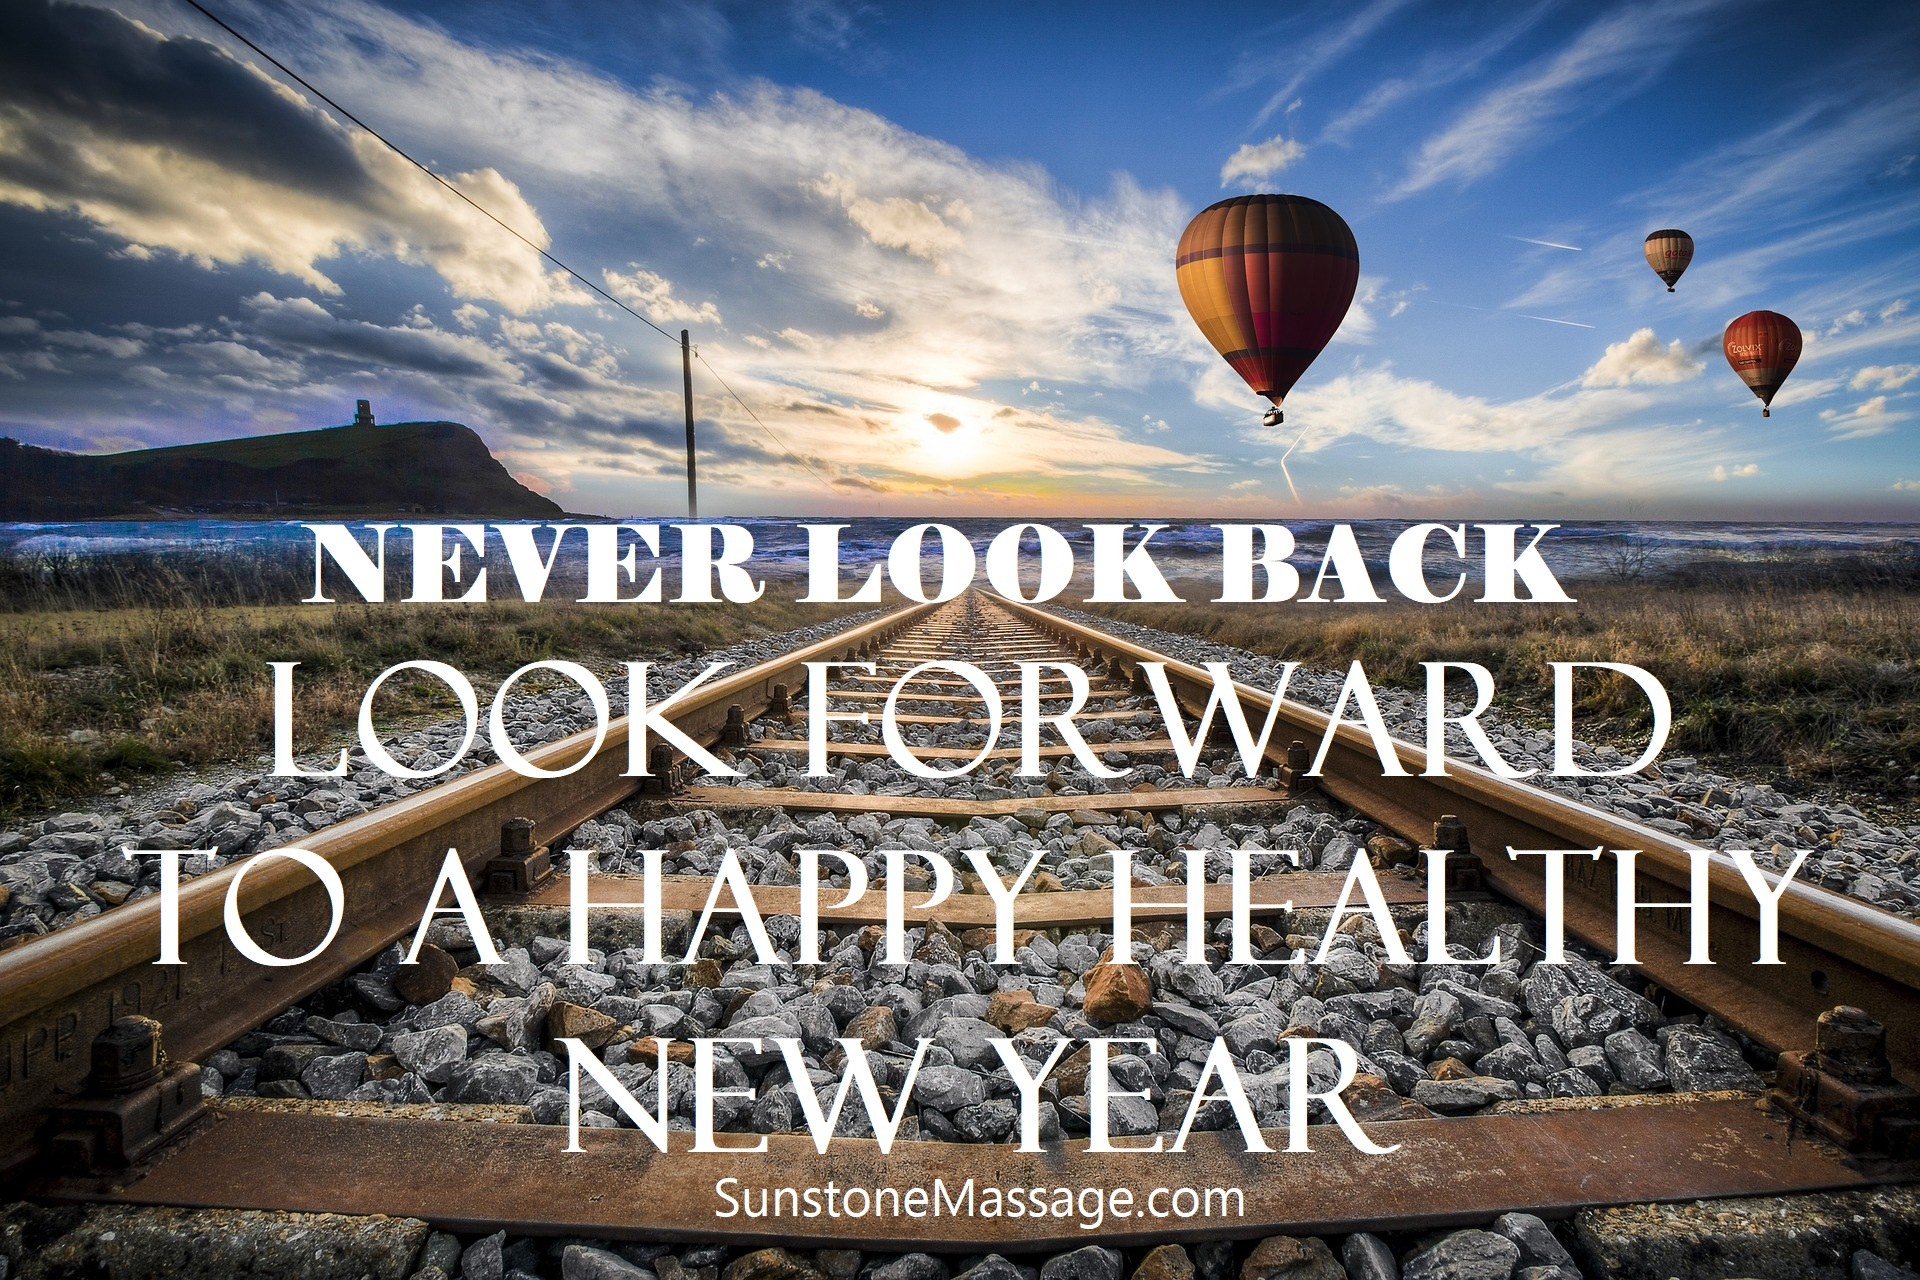 NEVER LOOK BACK LOOK FORWARD TO A HAPPY HEALTHY NEW YEAR